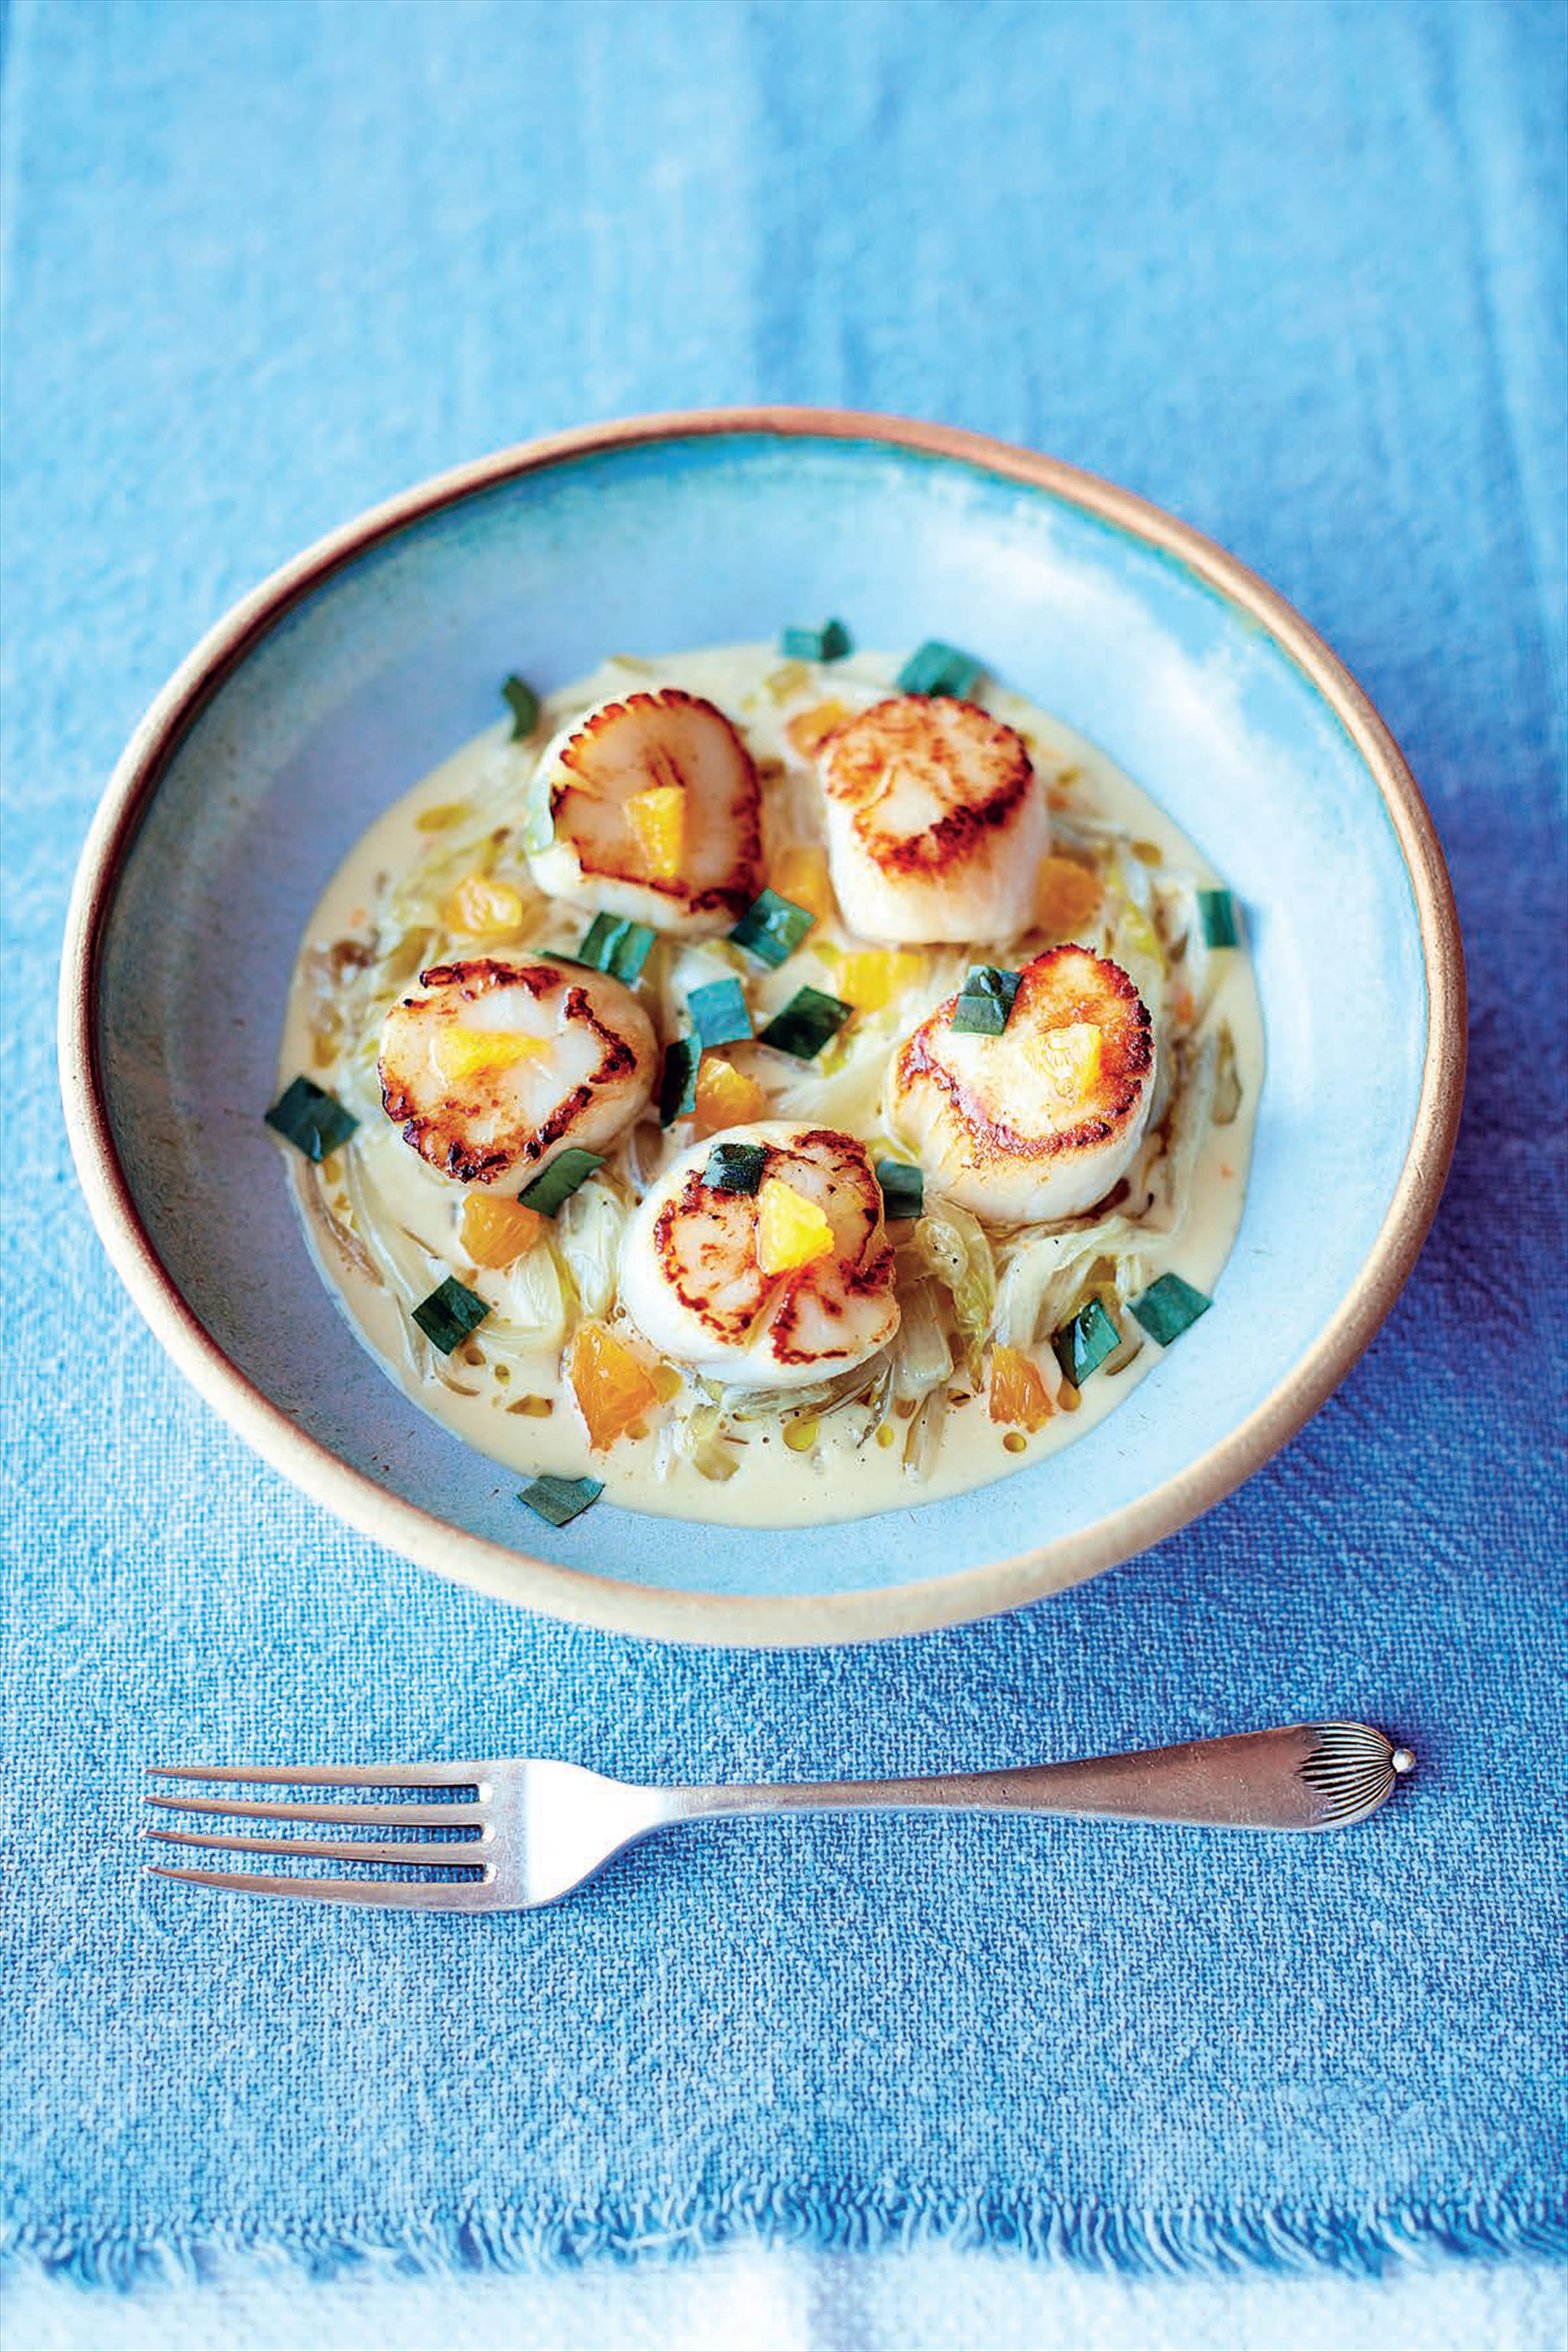 Pan-fried scallops, creamed chicory, orange and tarragon dressing